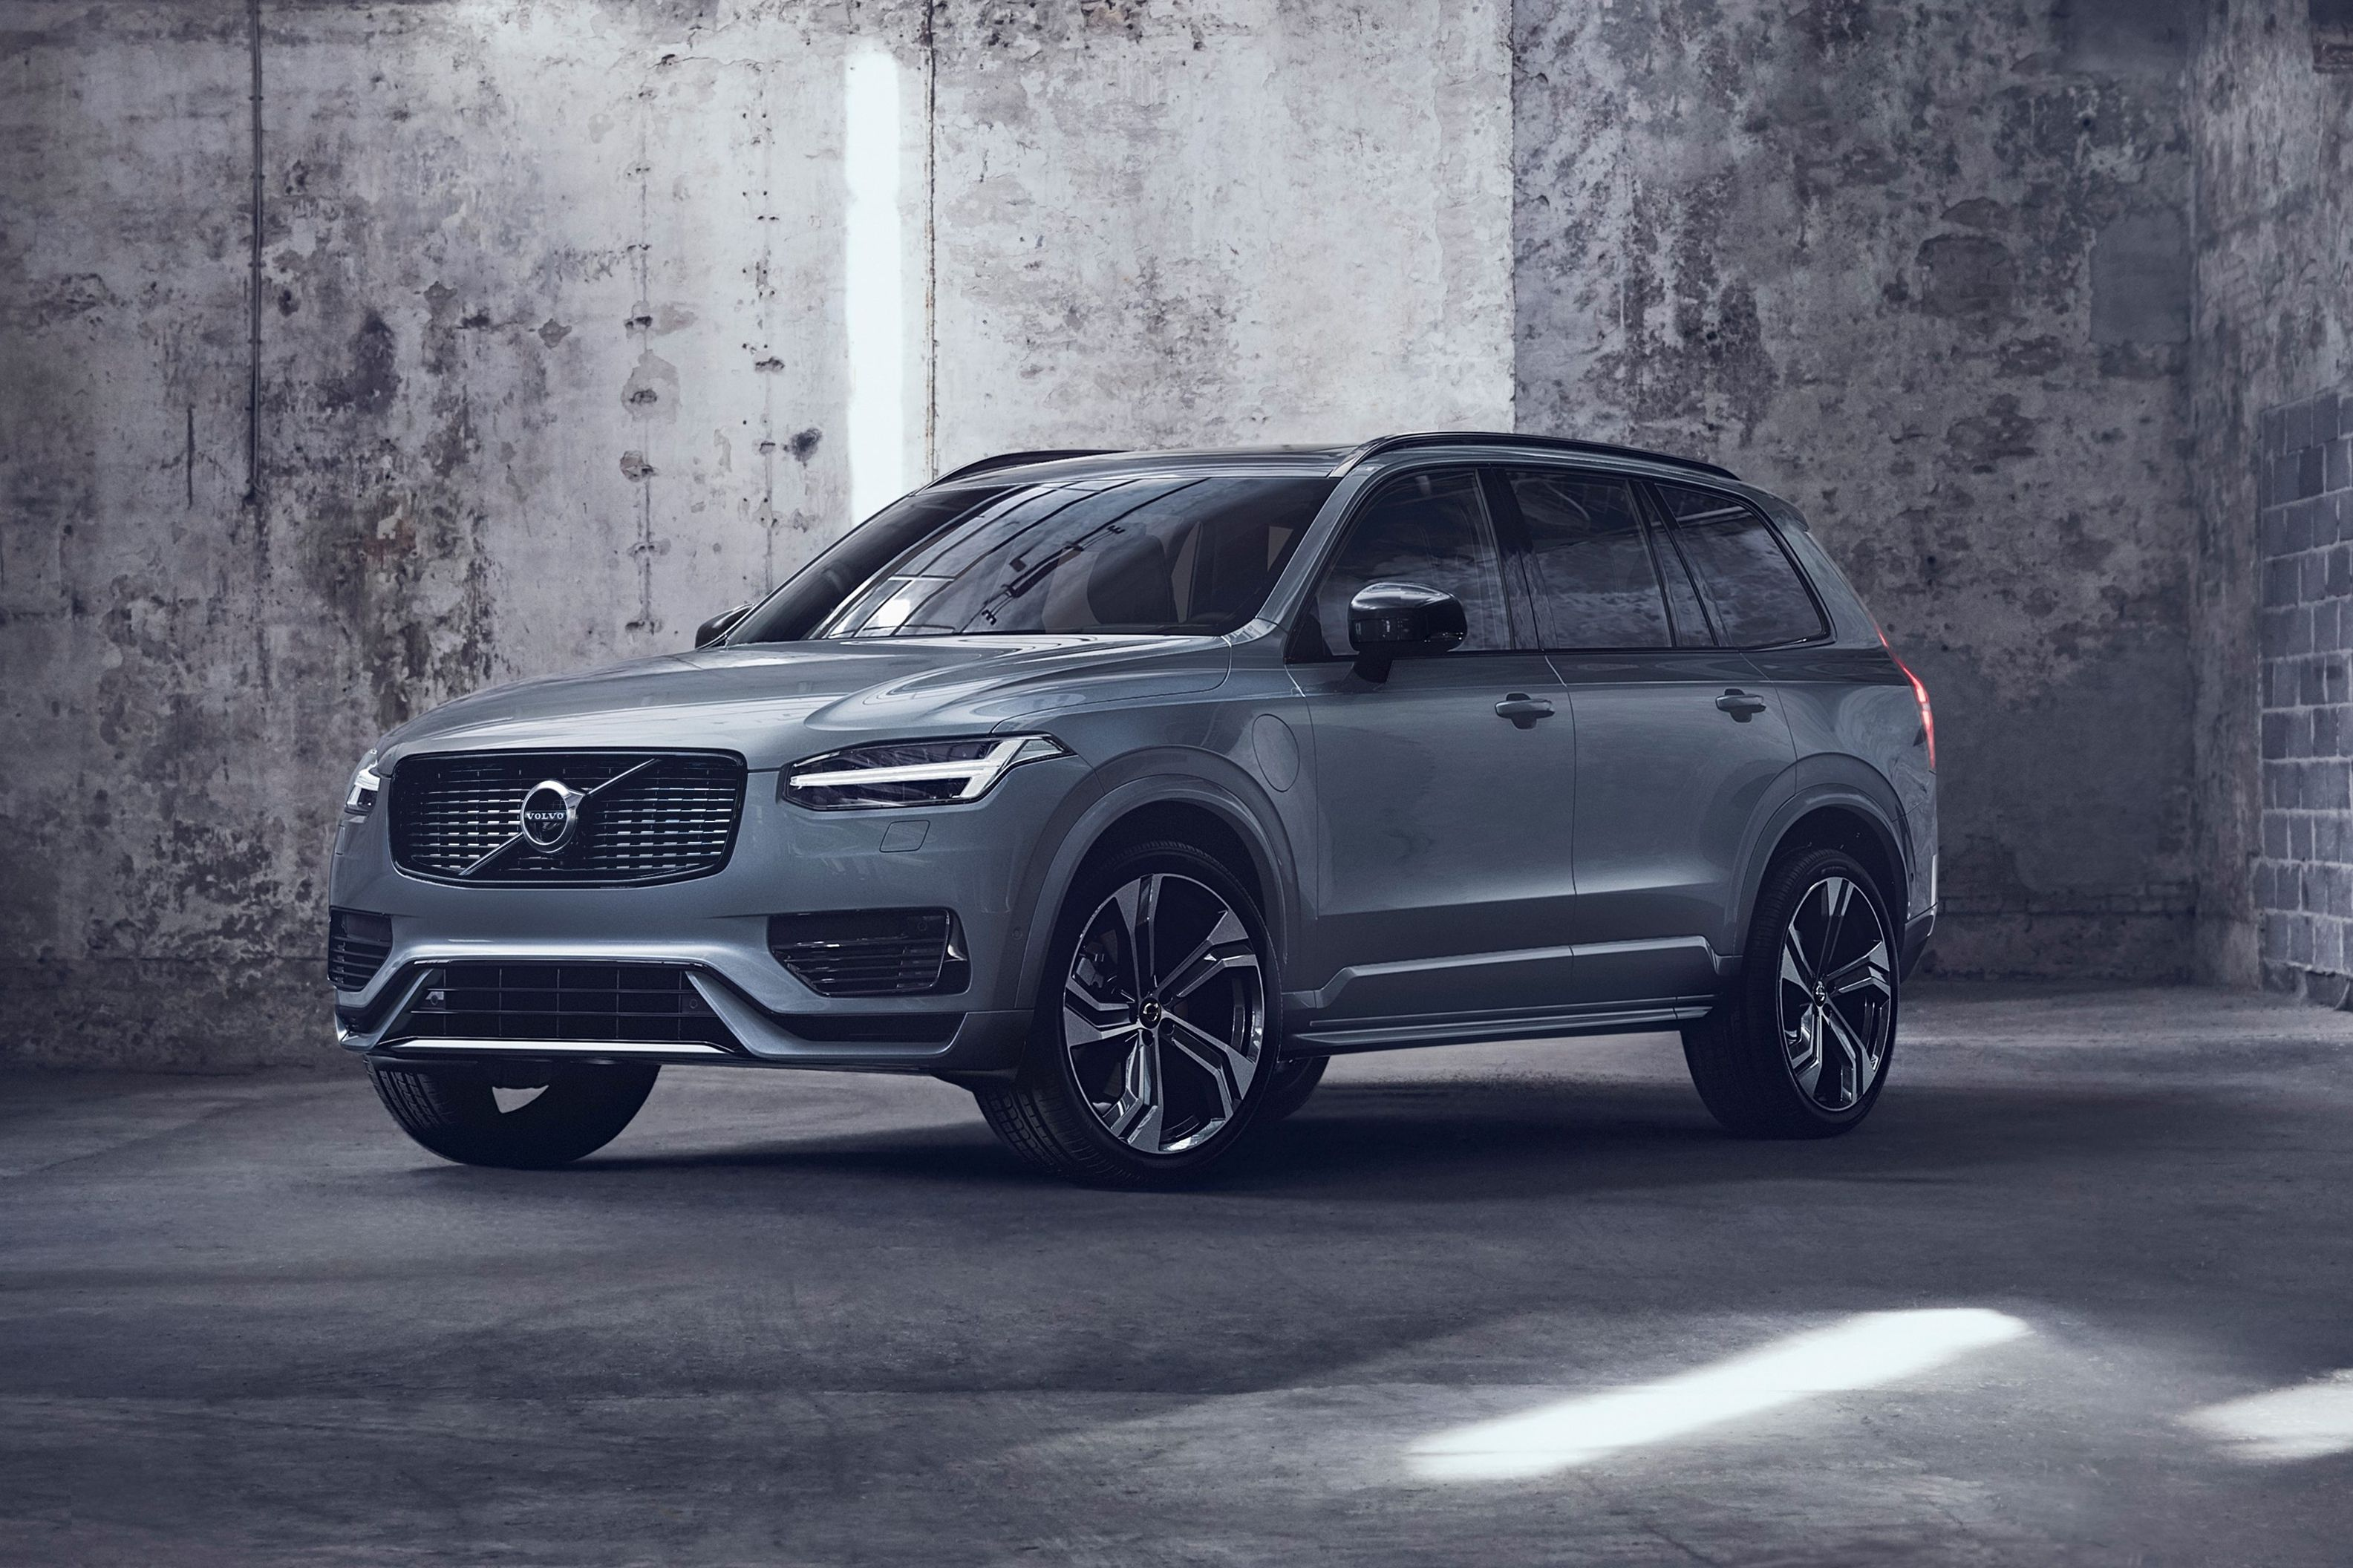 2021 Volvo Xc90 Review Pricing And Specs